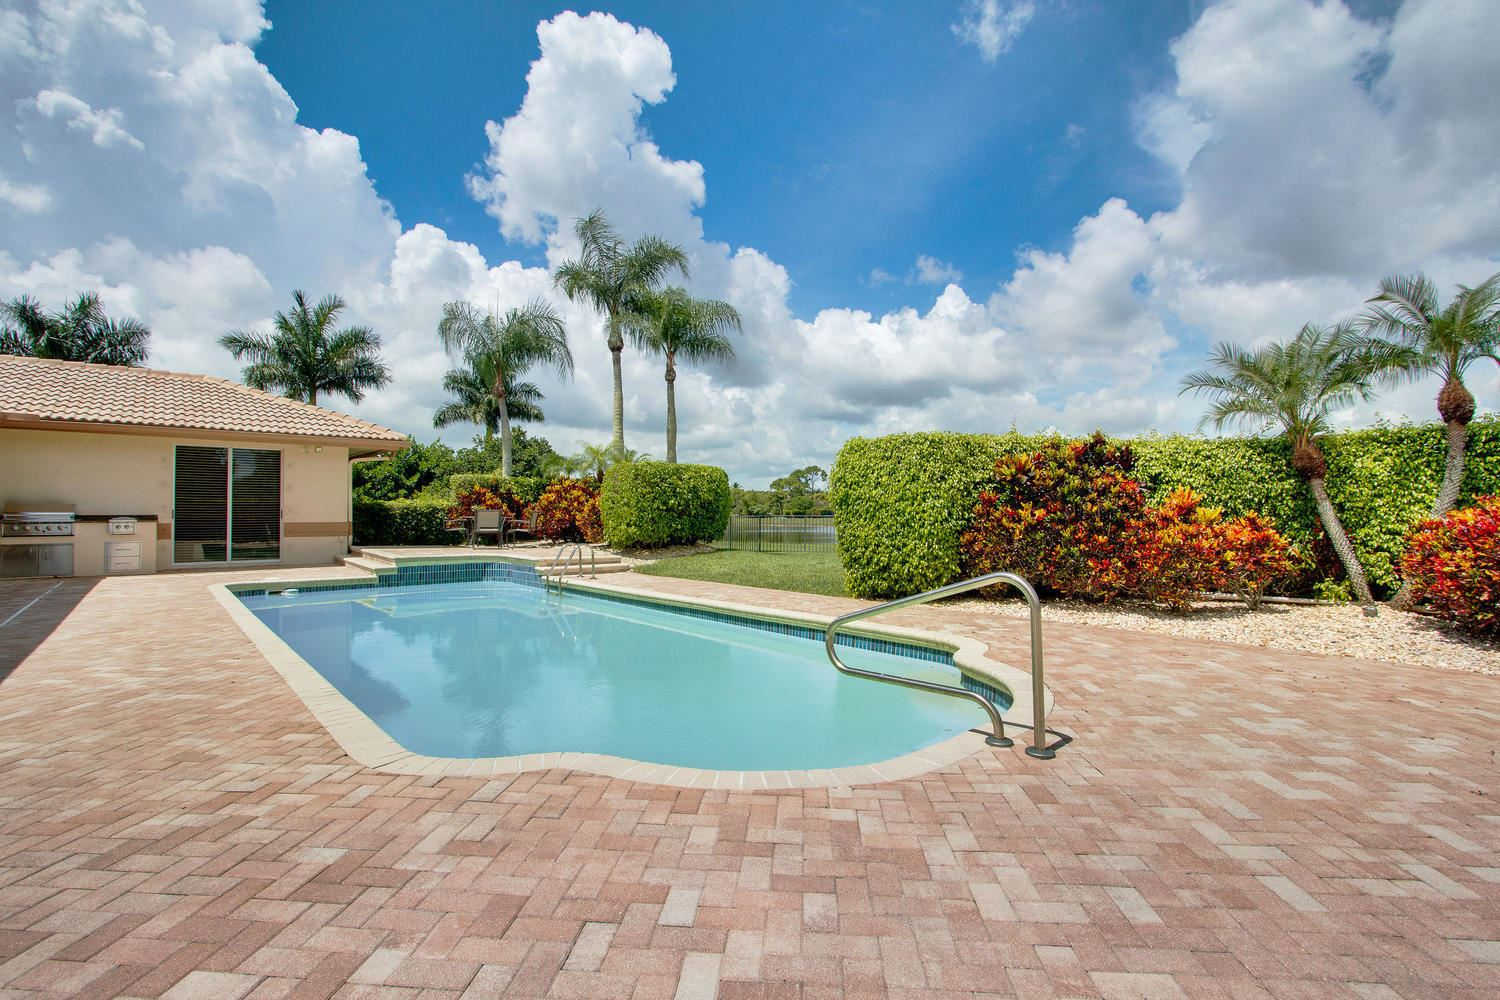 Photo of 8667 Steeplechase Drive, Palm Beach Gardens, FL 33418 (MLS # RX-10602645)